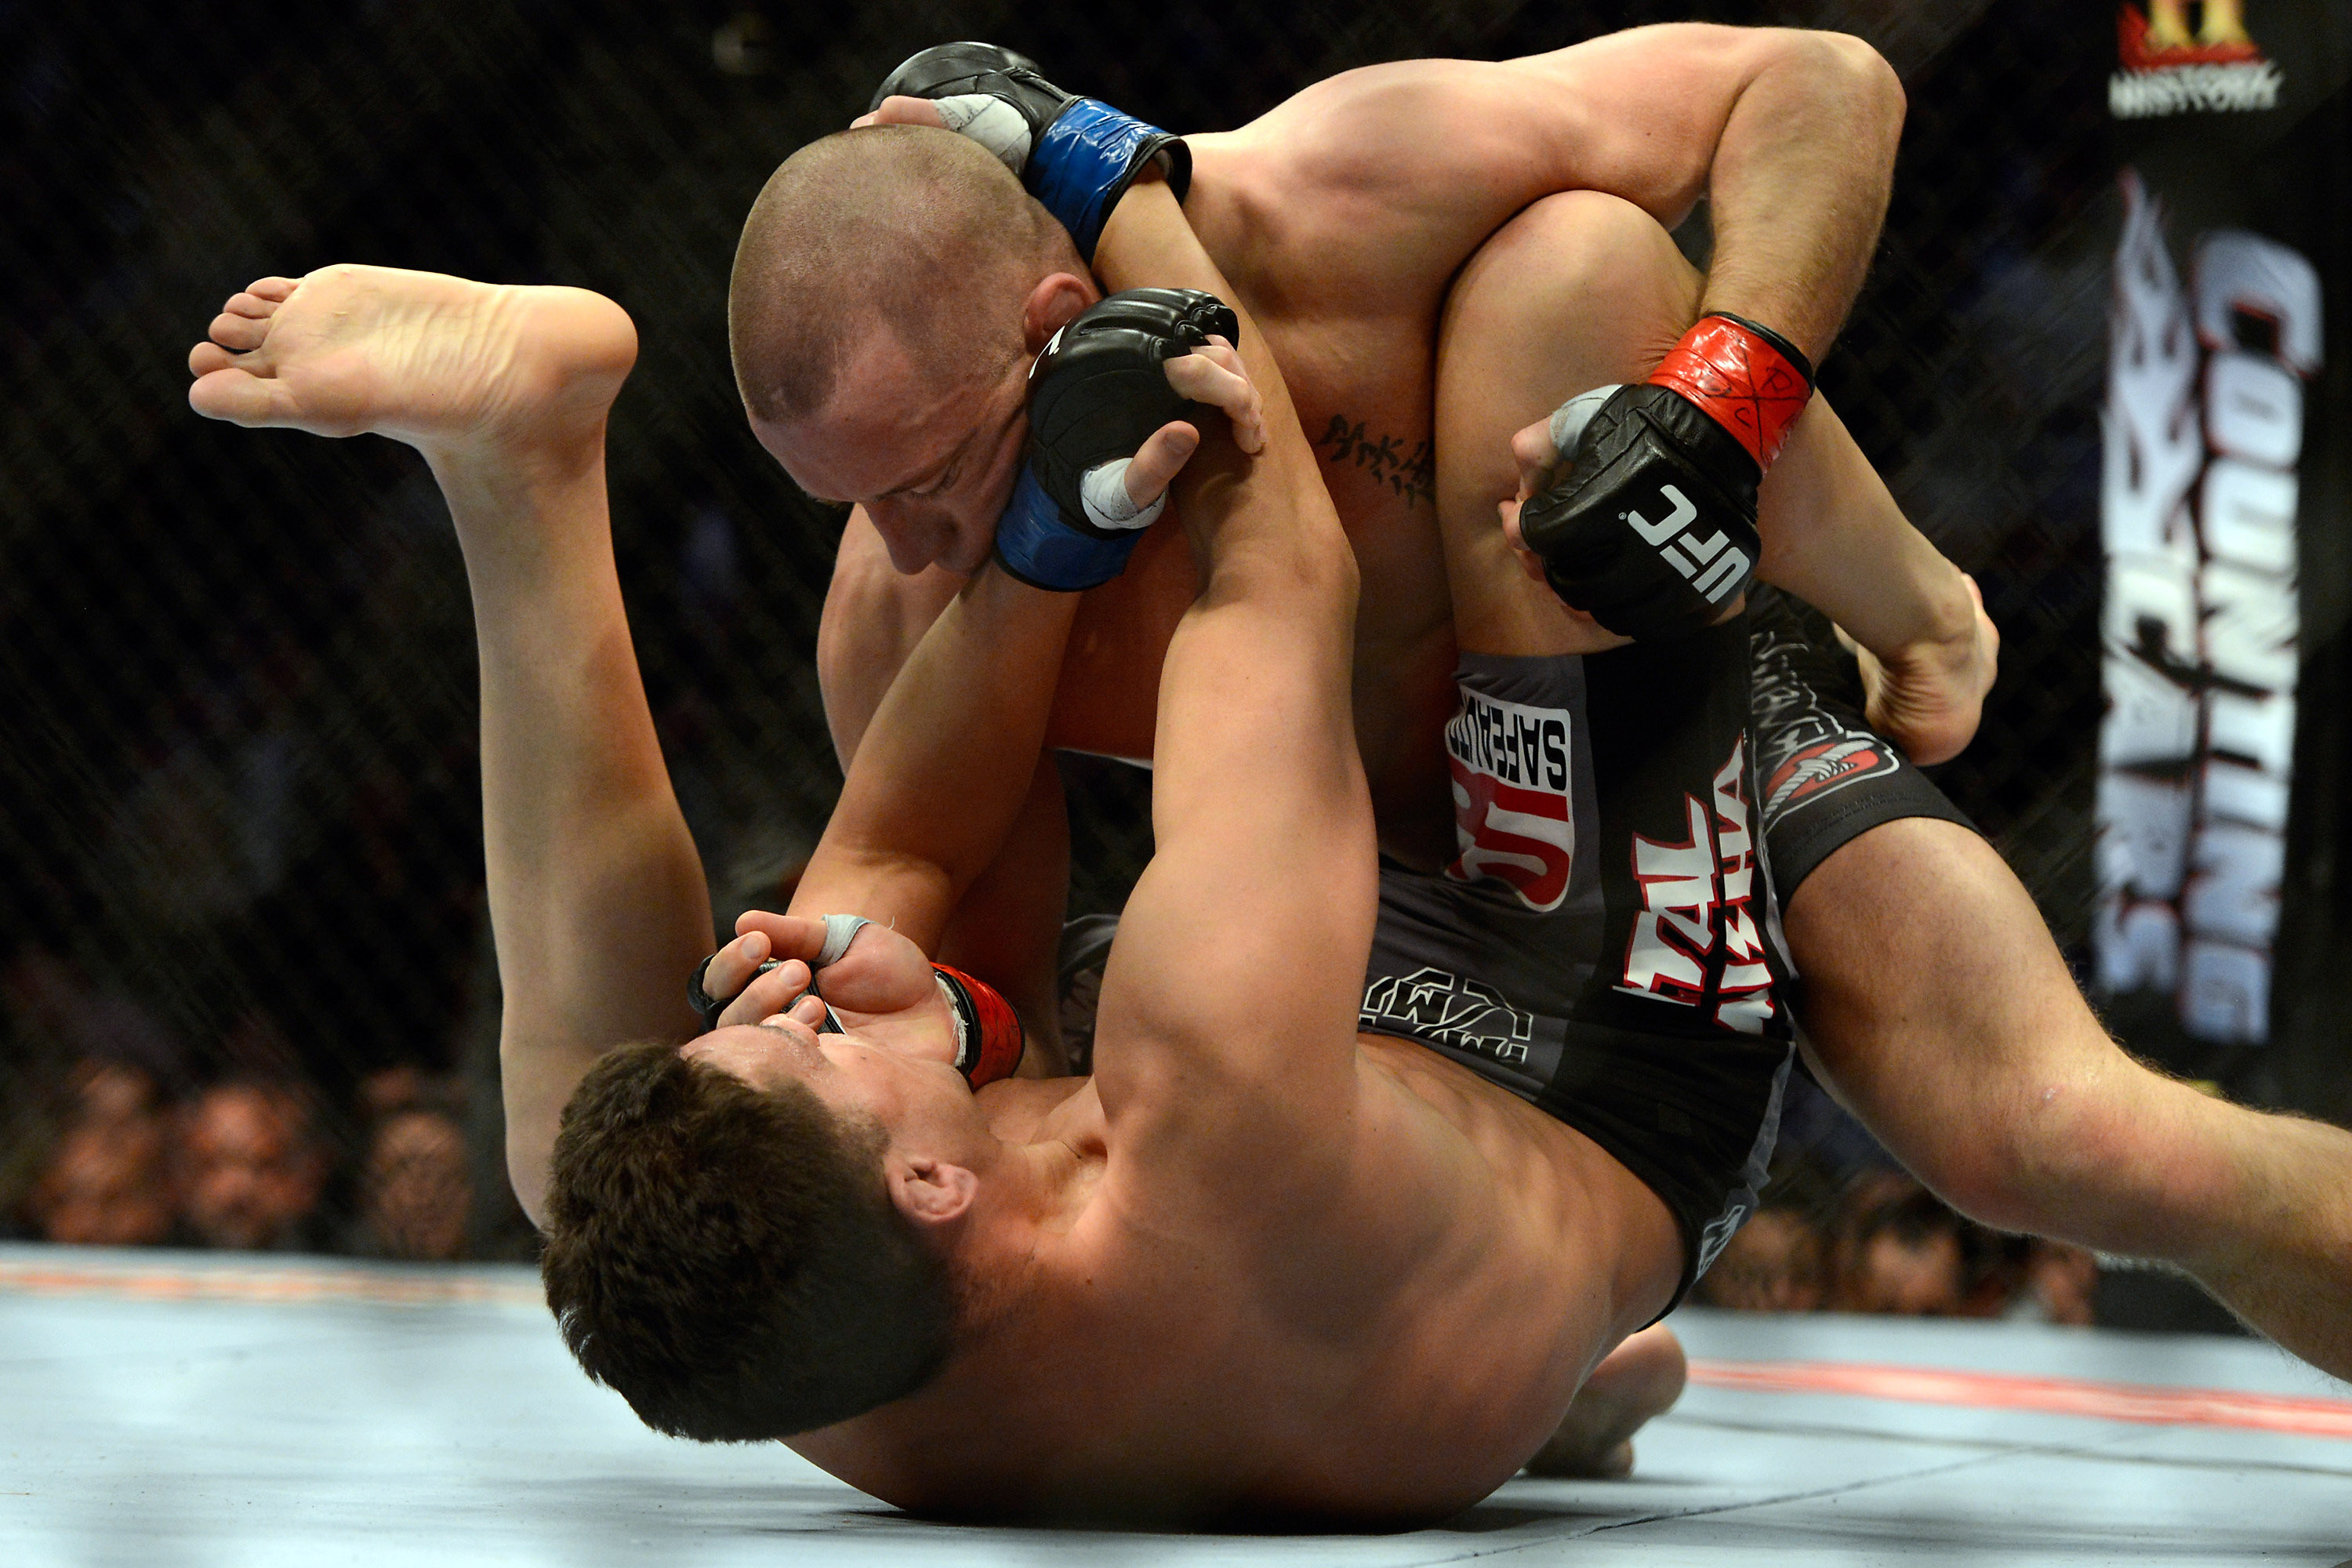 Georges St-Pierre throws punches at Nick Diaz during their welterweight fight. (USA Today Sports)